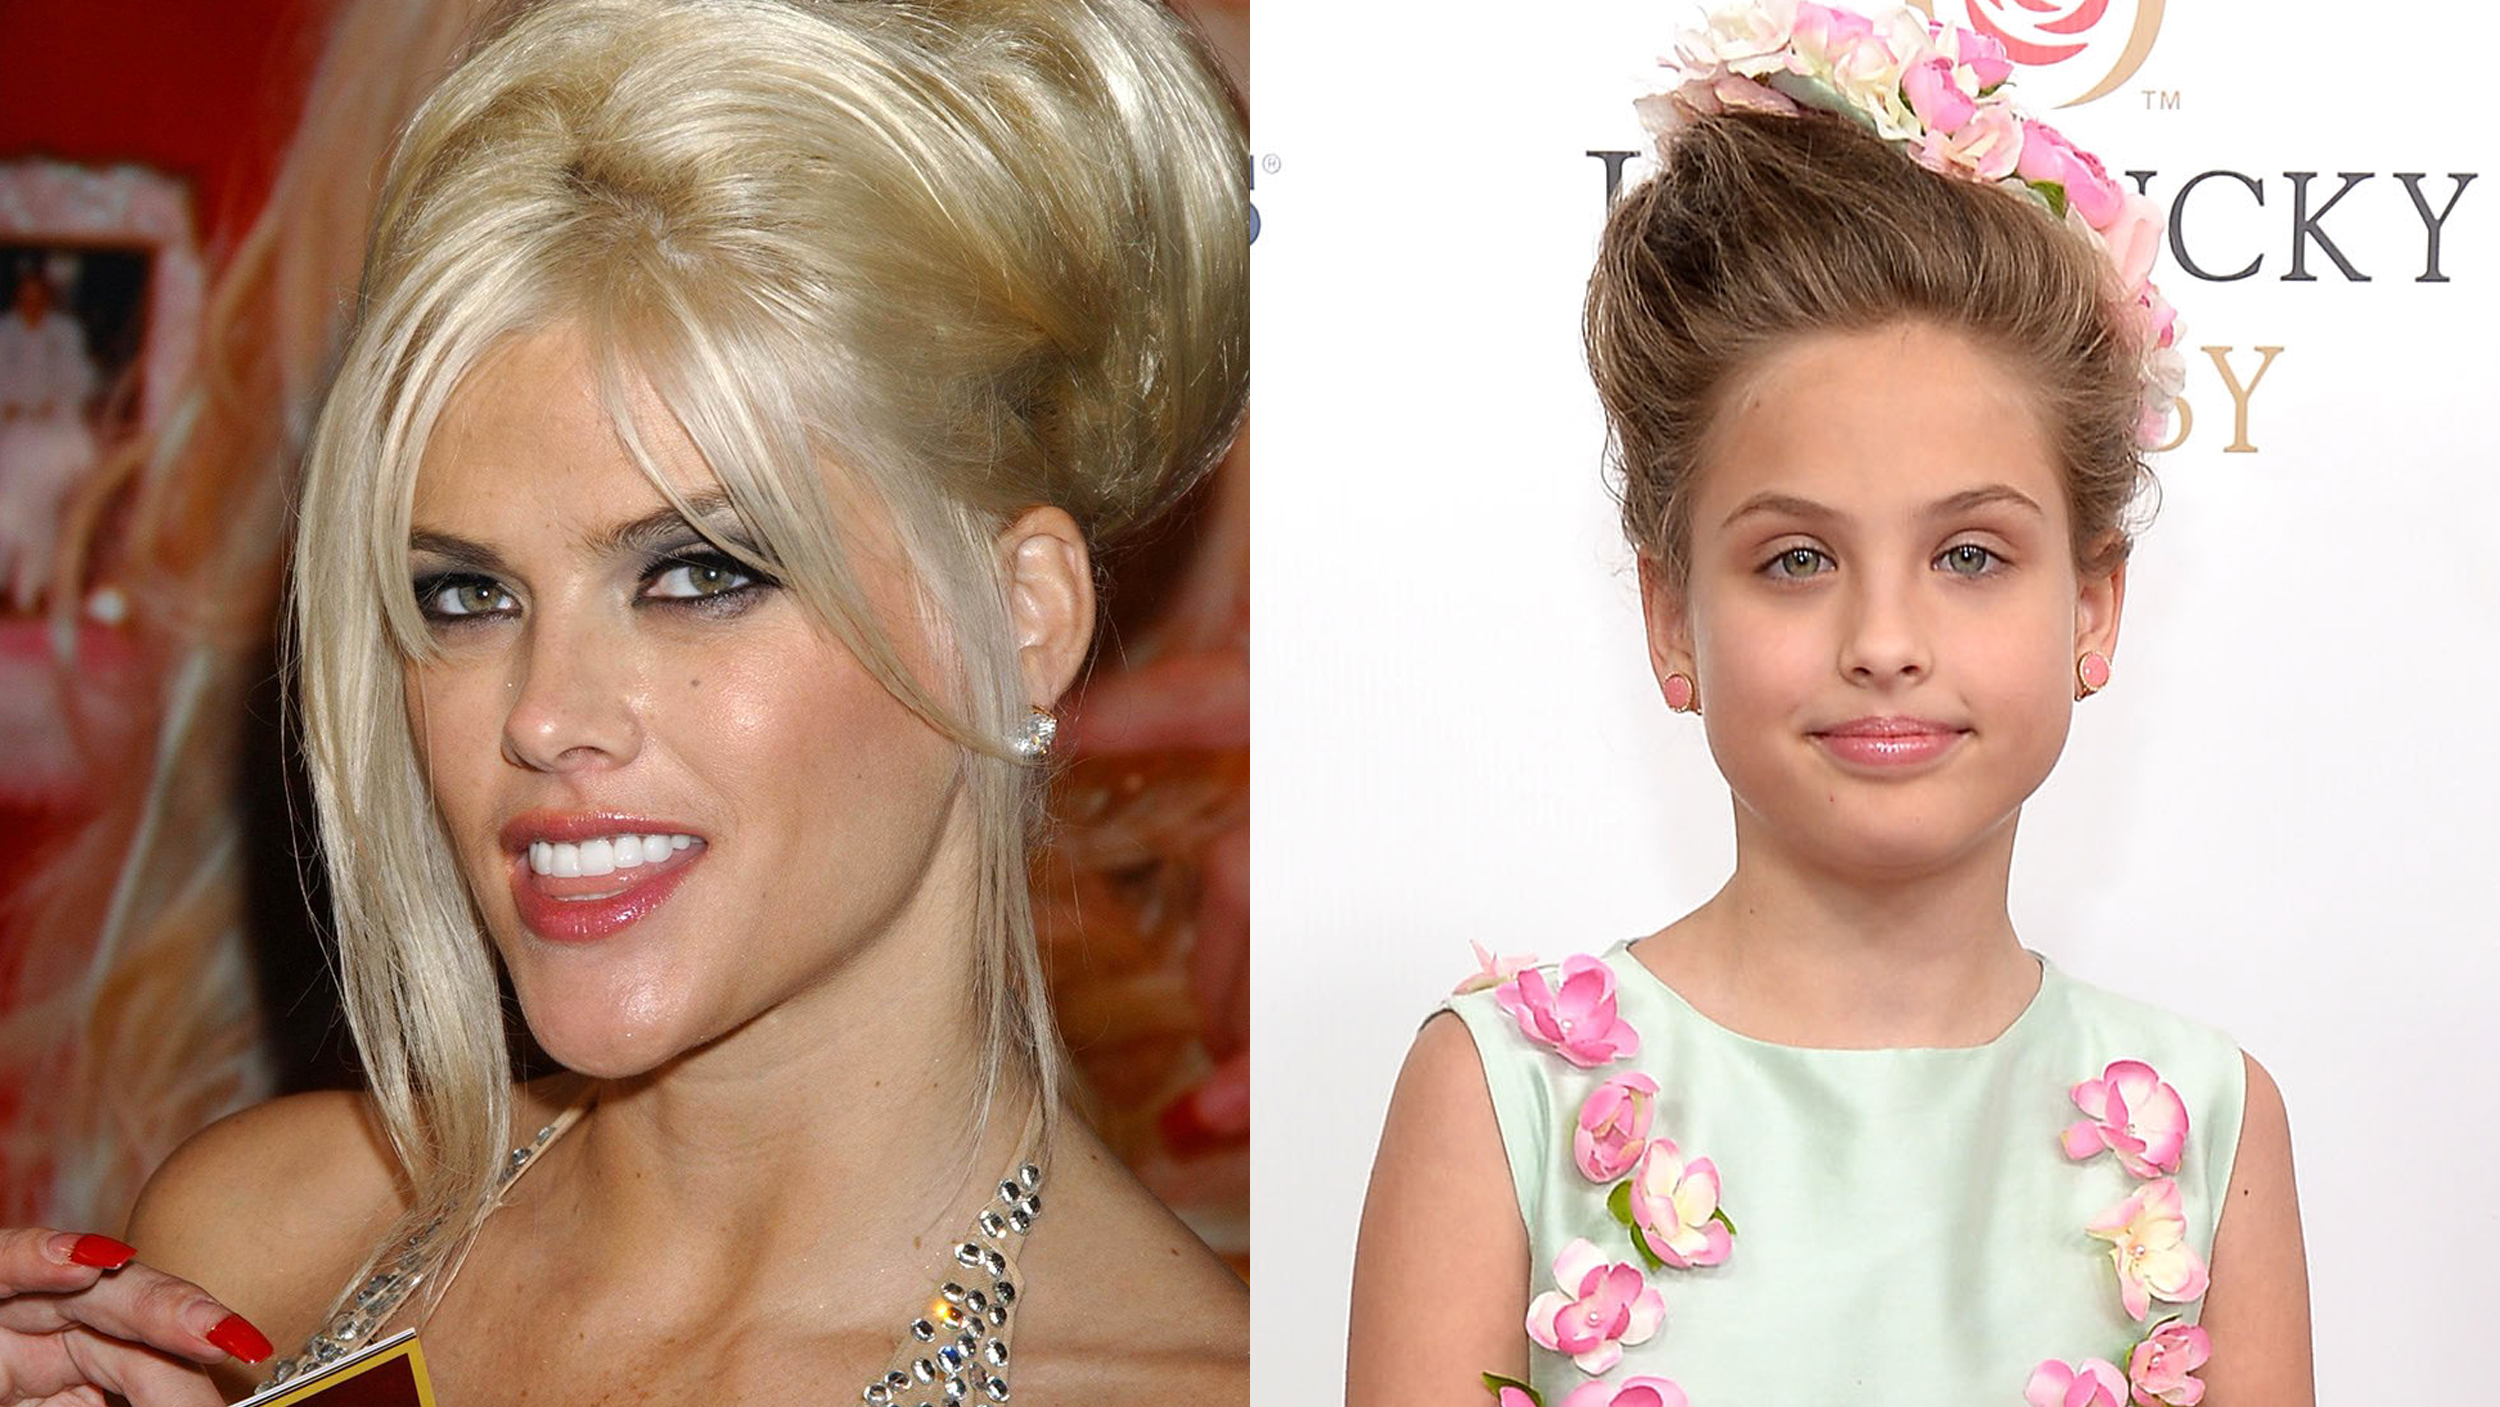 Anna Nicole Smith Before And After Plastic Surgery ...